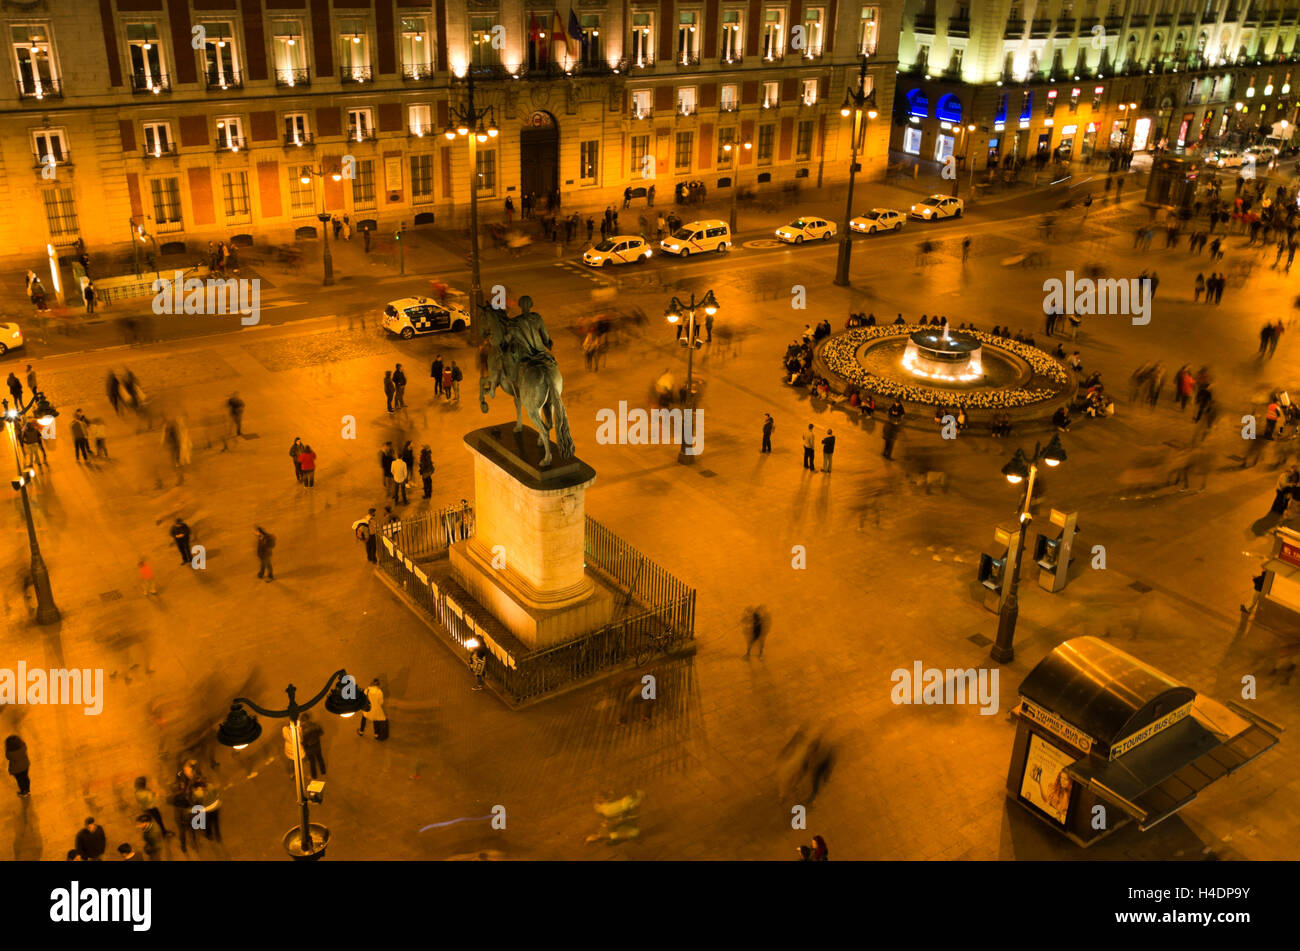 Puerta del Sol, hundreds of people mill around the plaza at night. Stock Photo